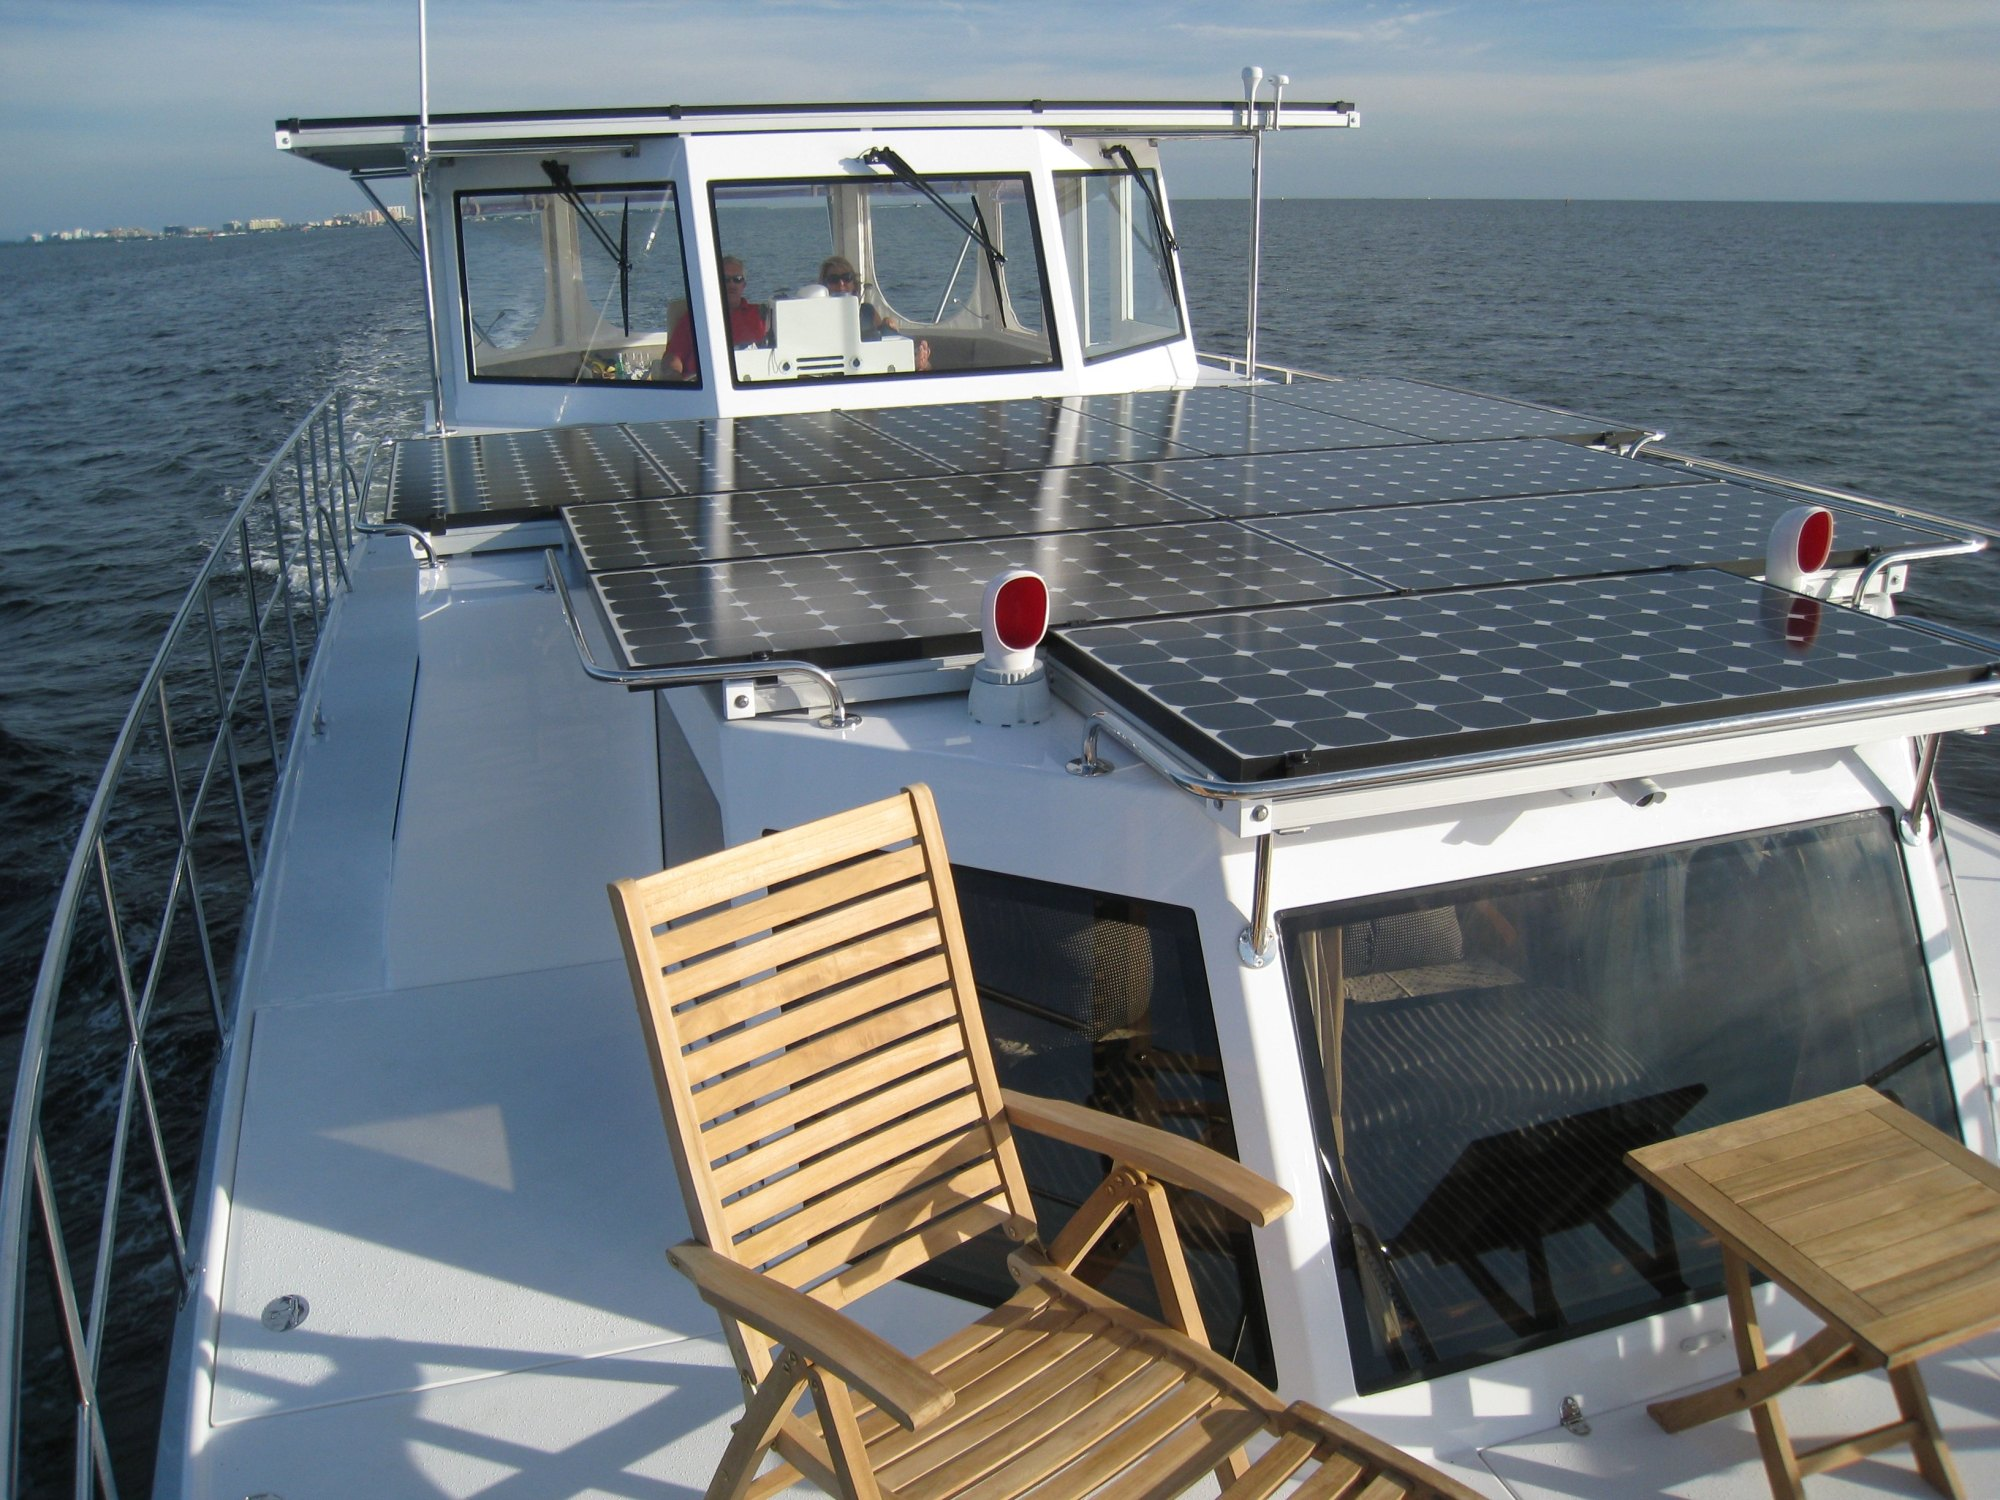 hight resolution of solar panel a dead battery is an all too common occurrence in a boat that sits idle most work weeks and when it happens it nearly always spoils a planned